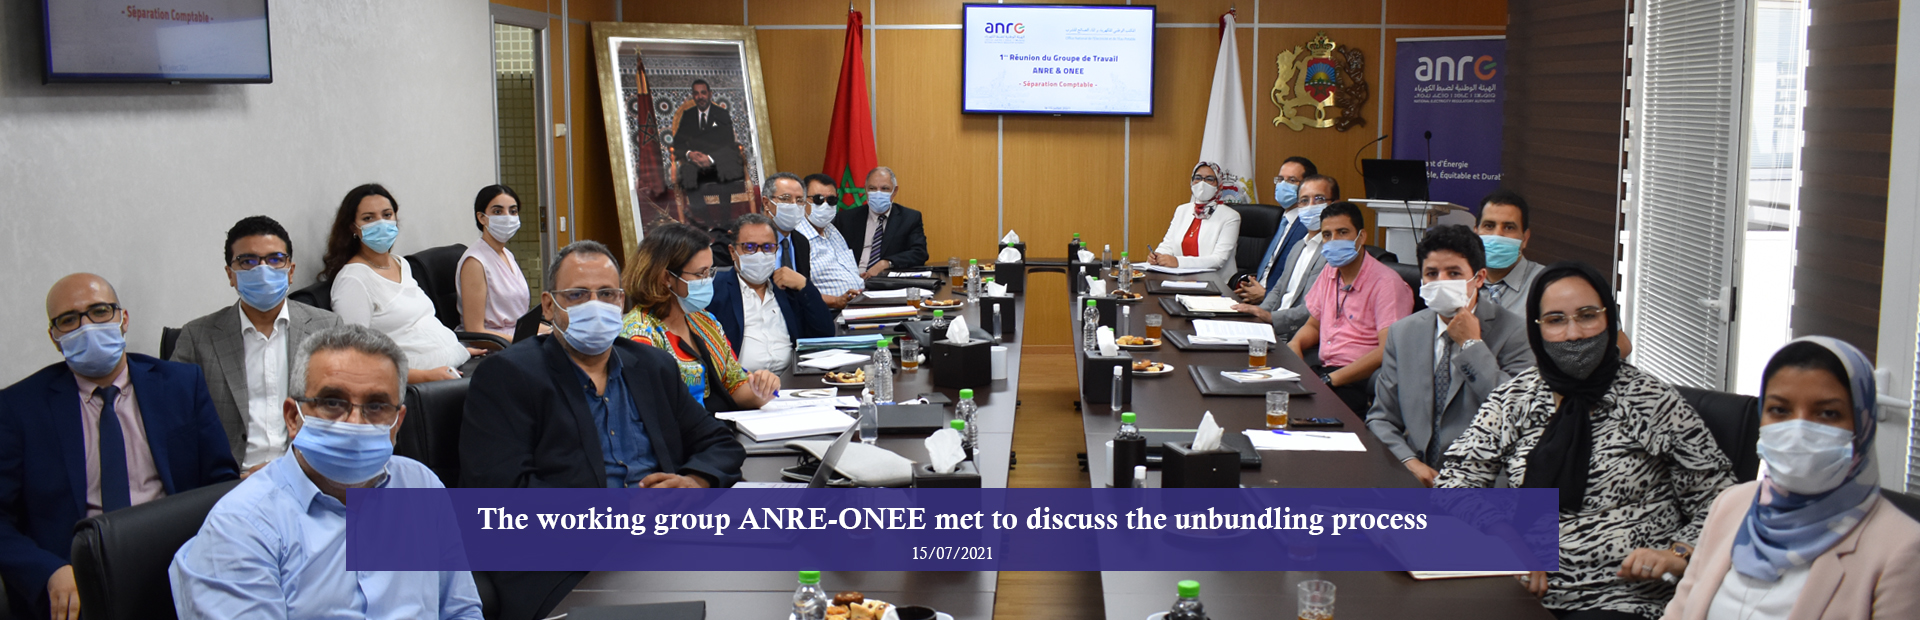 The working group ANRE-ONEE met to discuss the unbundling process